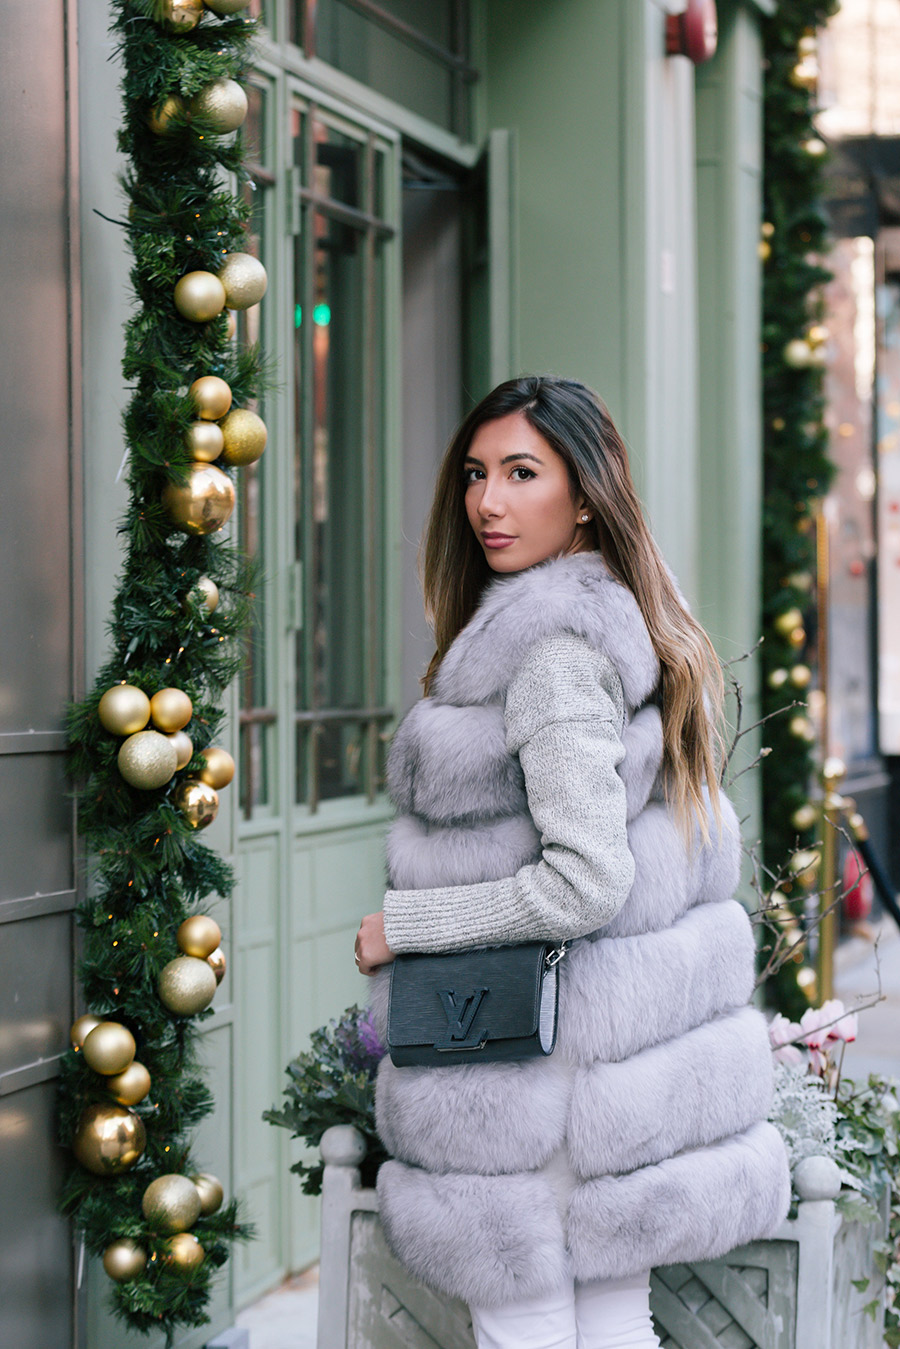 Ulia Ali wearing fur vest and Louis Vuitton bag.